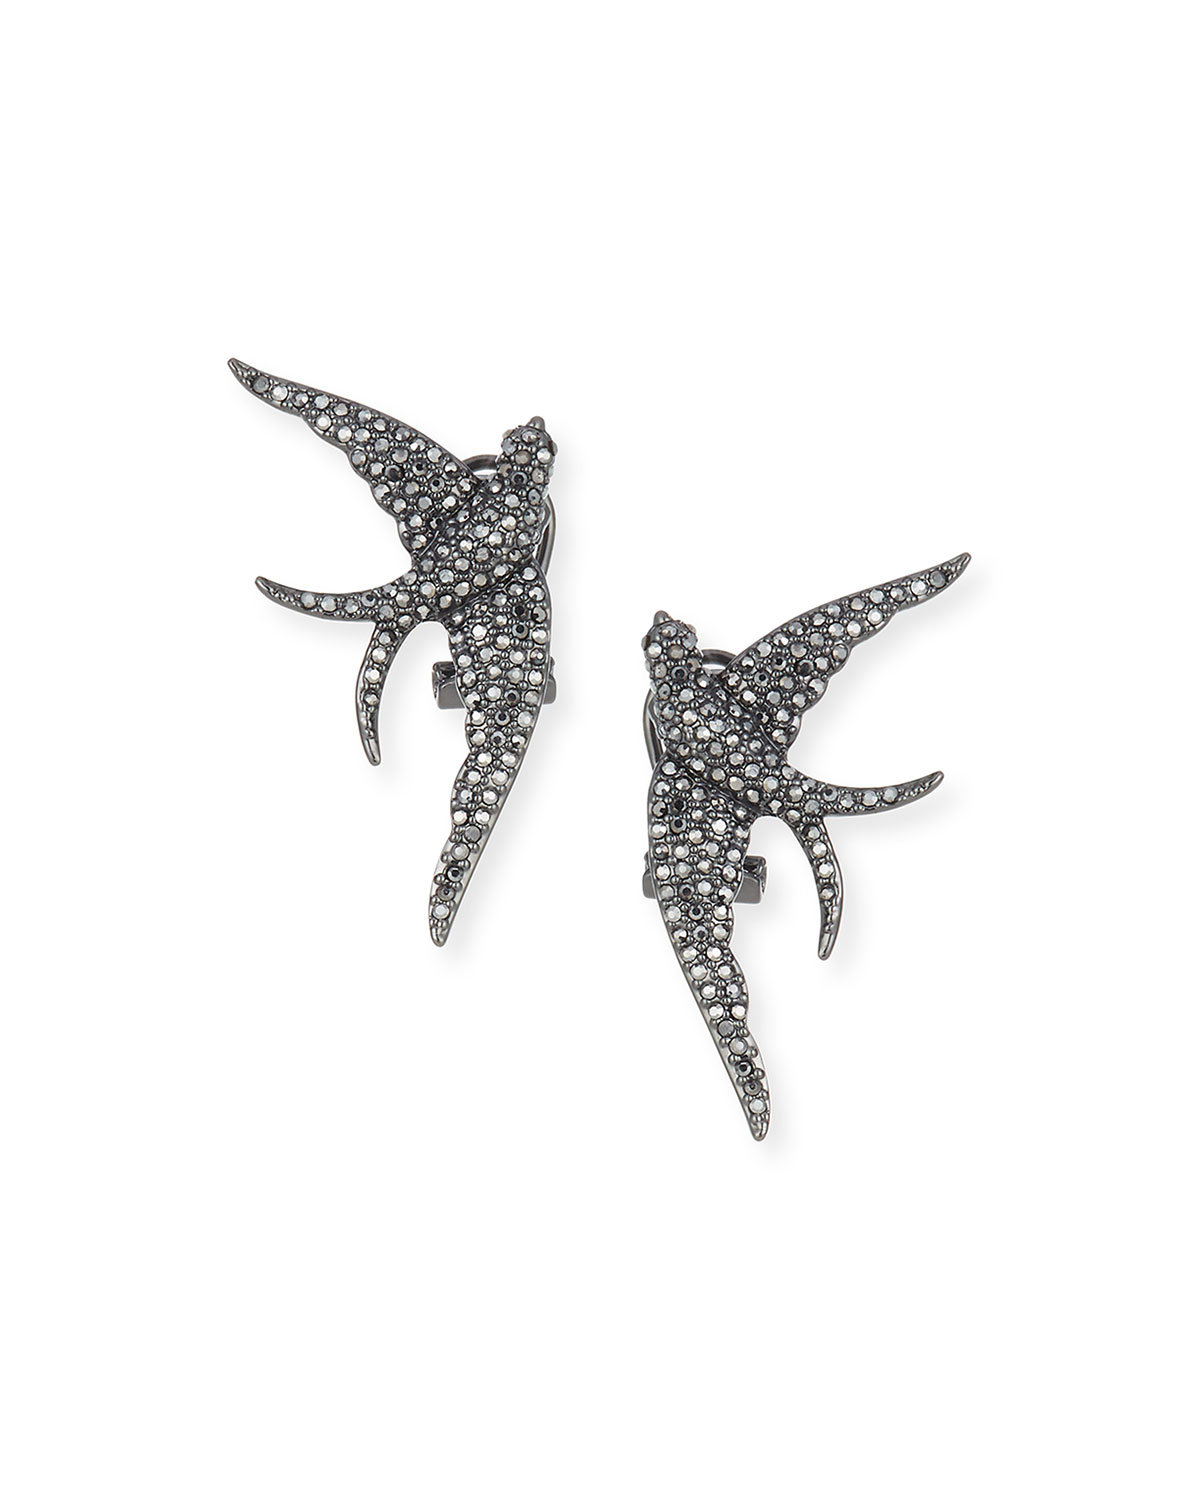 Sparrow Stud Earrings by Lulu Frost